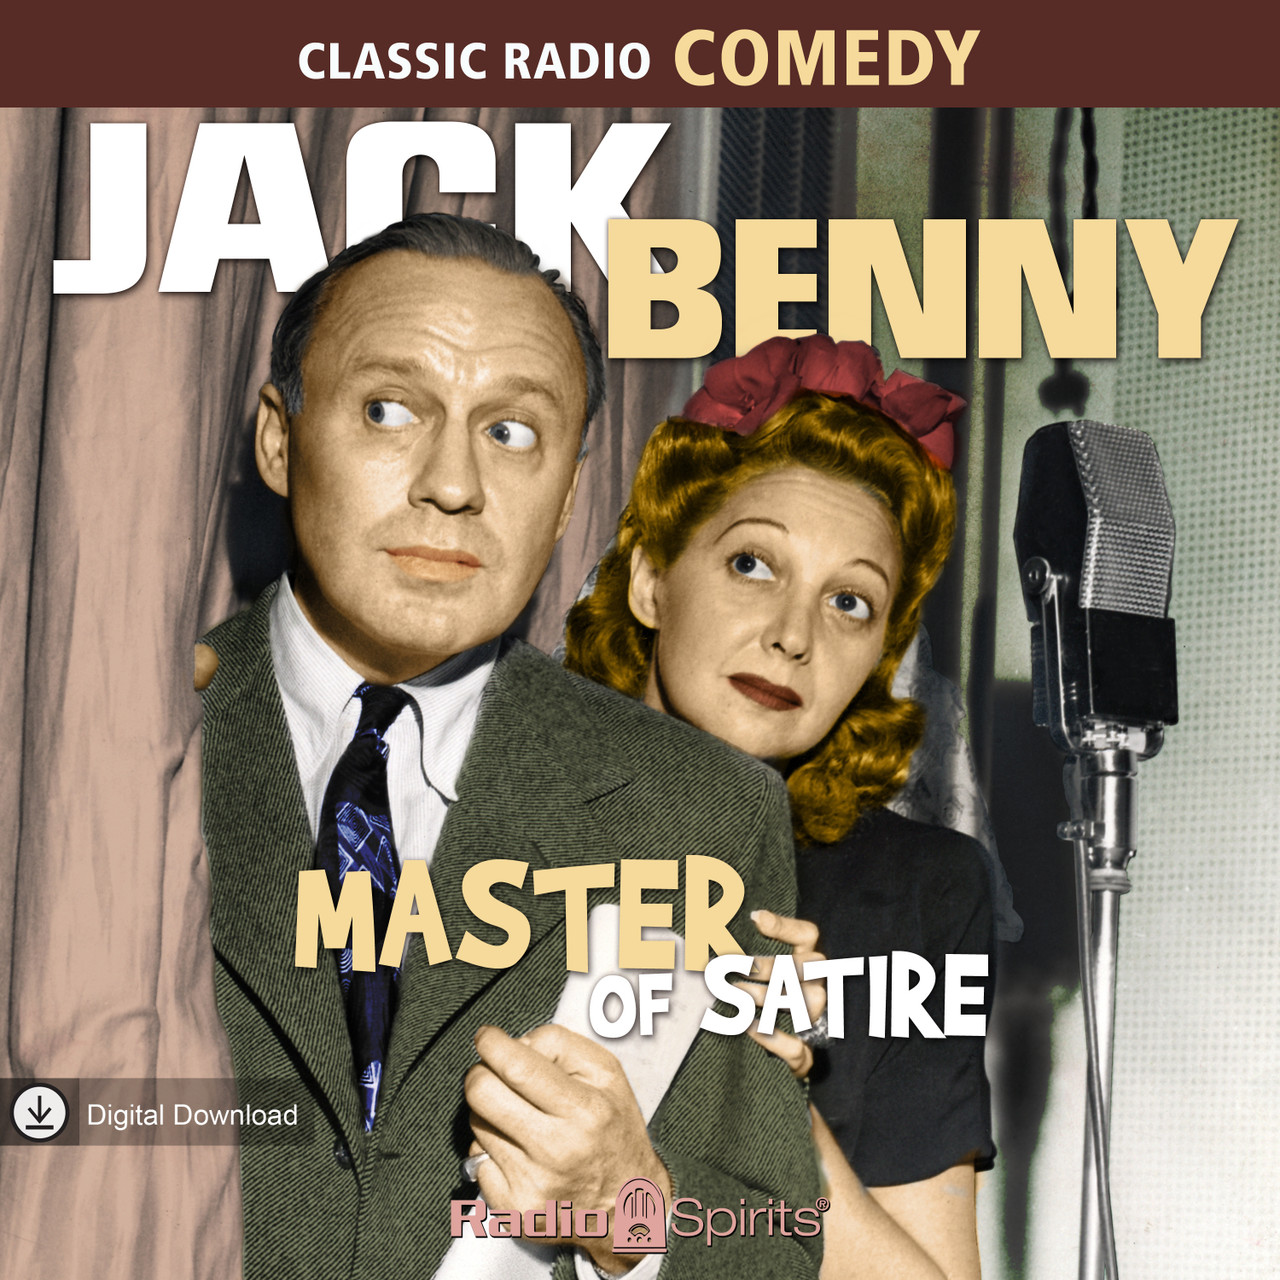 Jack Benny: Master of Satire